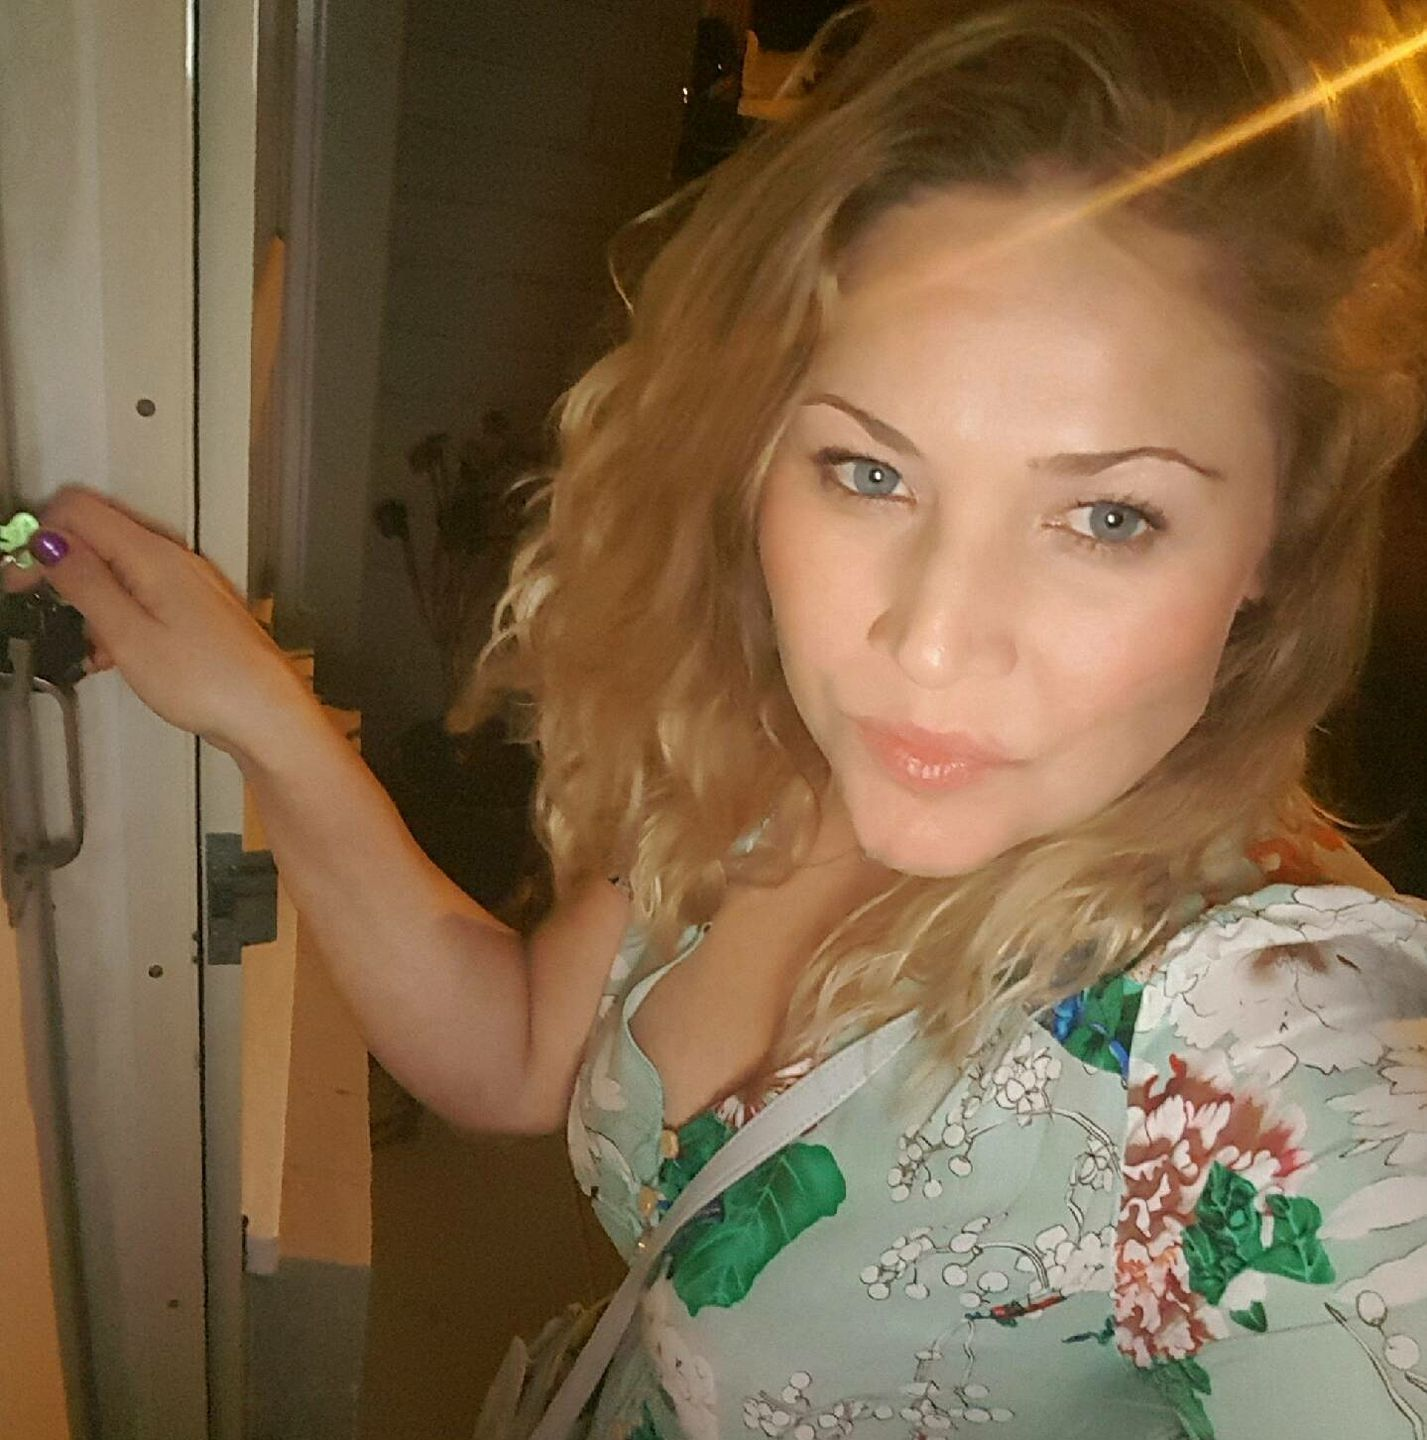 fremantle cougars personals Join now for free and start dating straight away i am a first name no nicknames, please date of birth email address an activation email will be sent to.